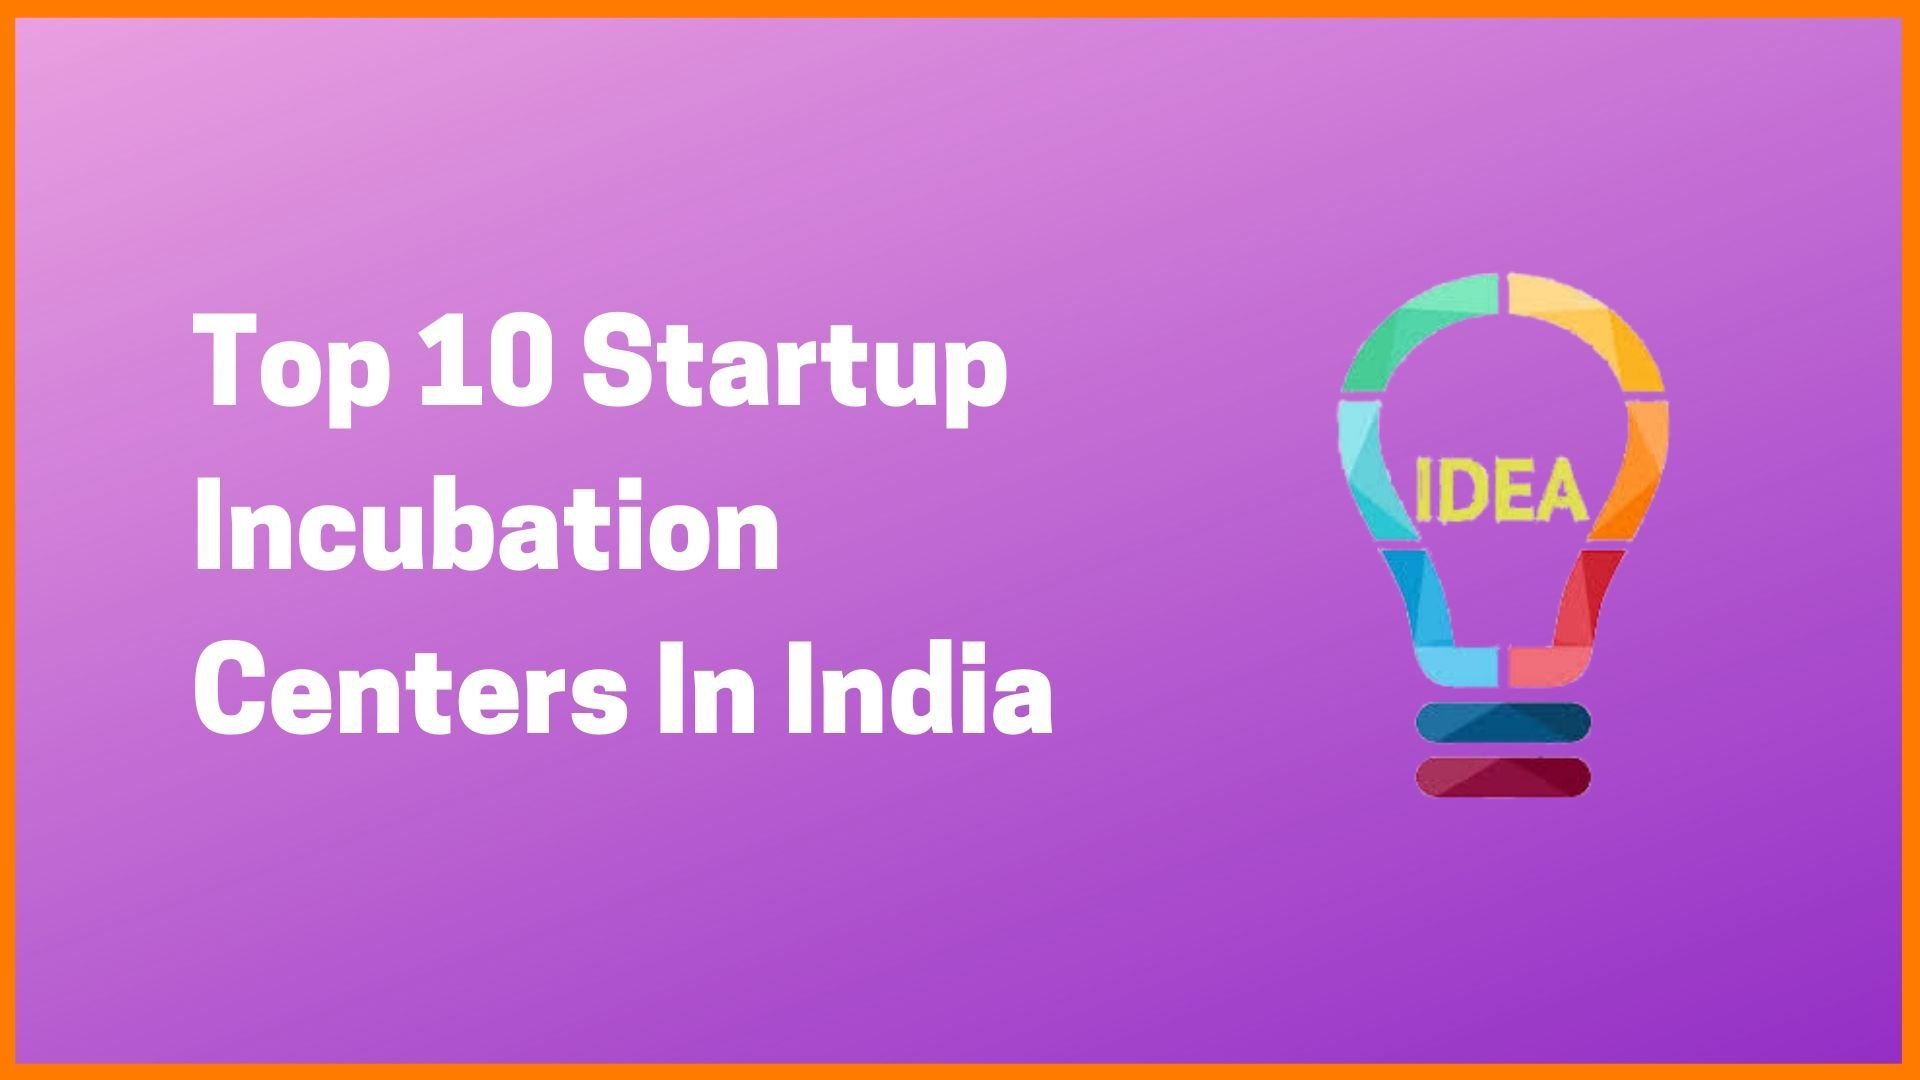 Top 10 Startup Incubation Centers In India